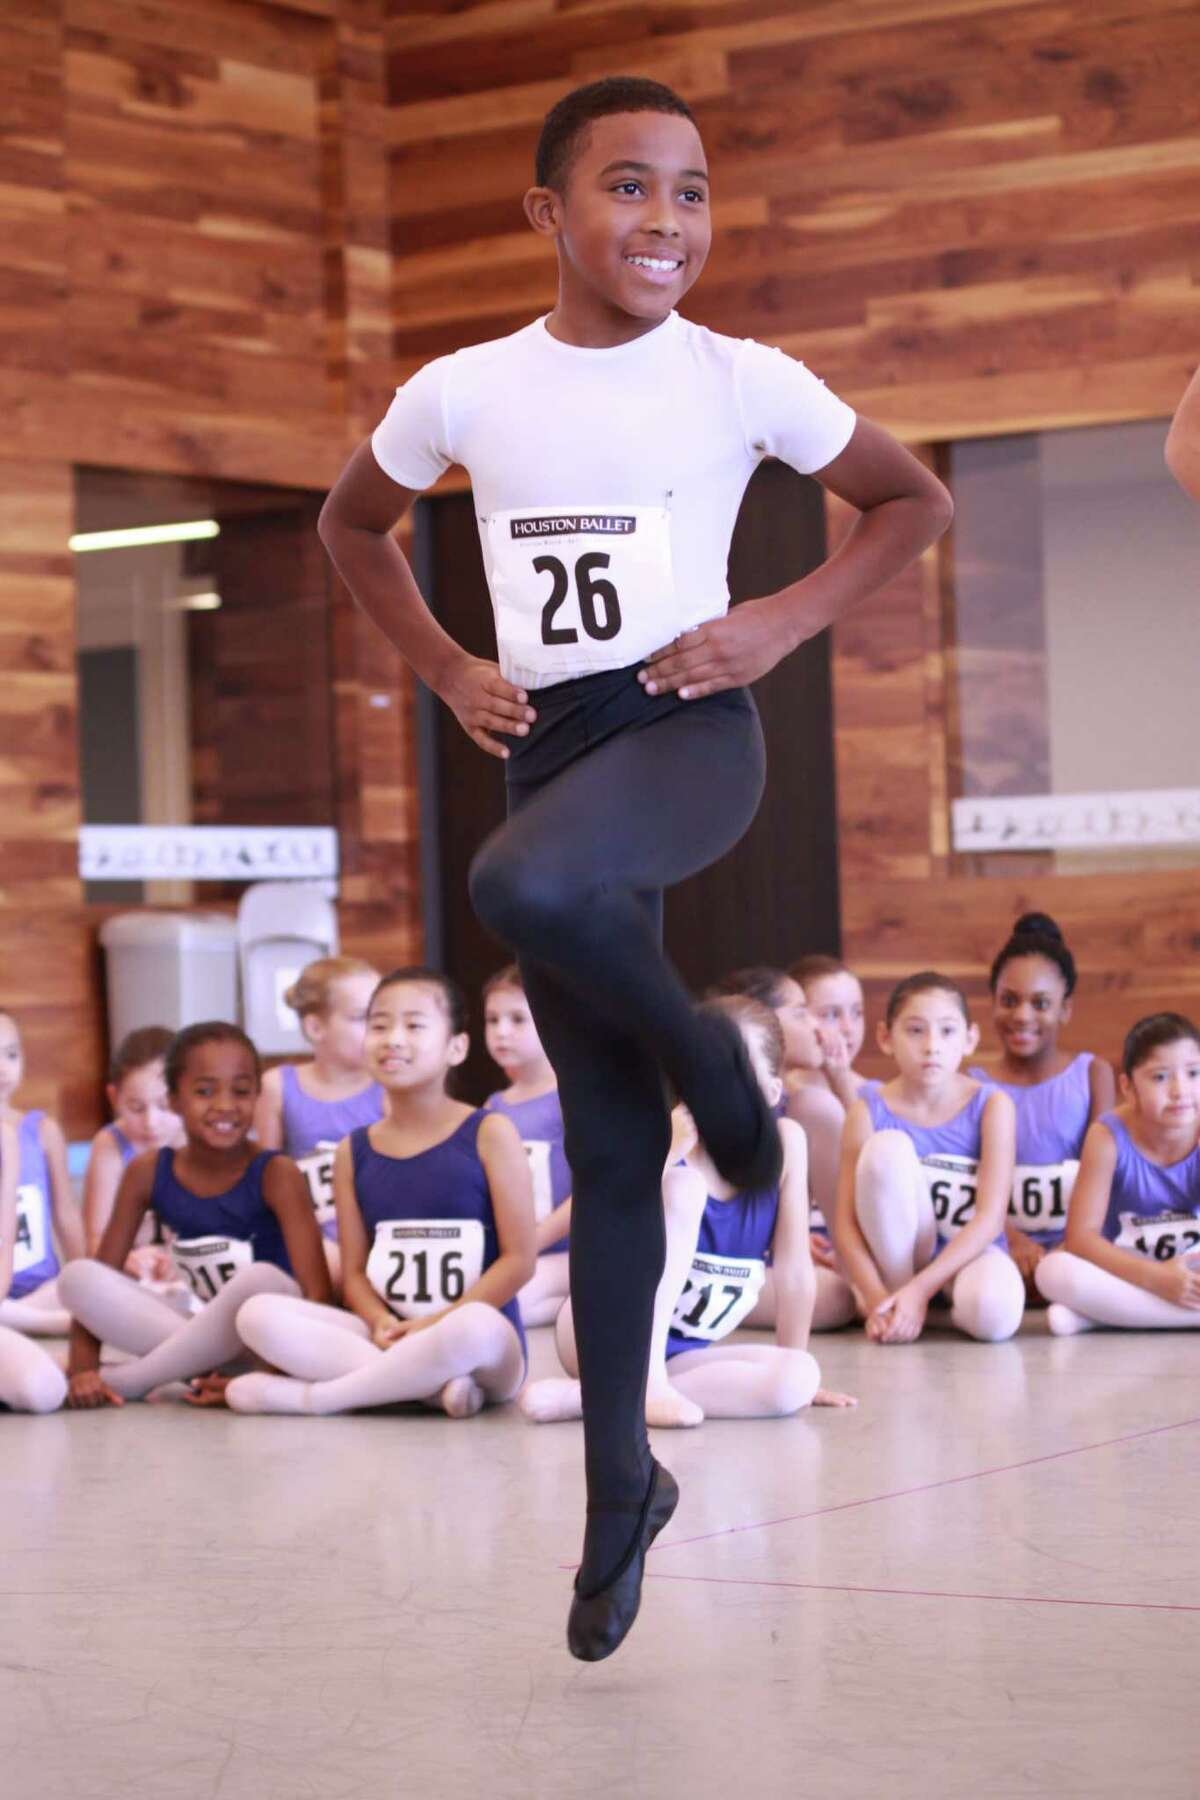 """Houston Ballet Academy students recently auditioned for Houston Ballet's production of """"The Nutcracker."""" Michael Amoky, 10, was selected to dance the role of one of the party boys. Houston Ballet Academy students recently auditioned for Houston Ballet's production of """"The Nutcracker."""" Michael Amoky, 10, was selected to dance the role of one of the party boys."""